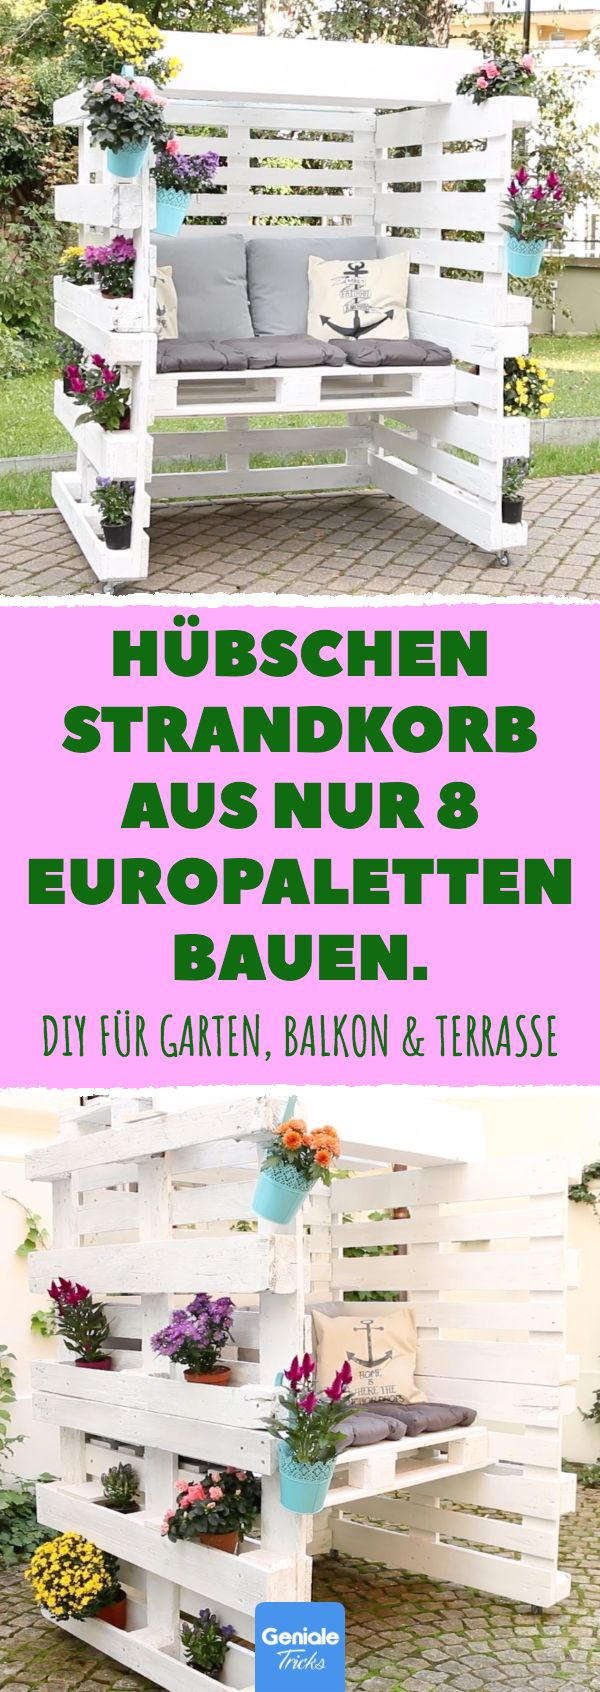 Browse Europaletten Images And Ideas On Pinterest